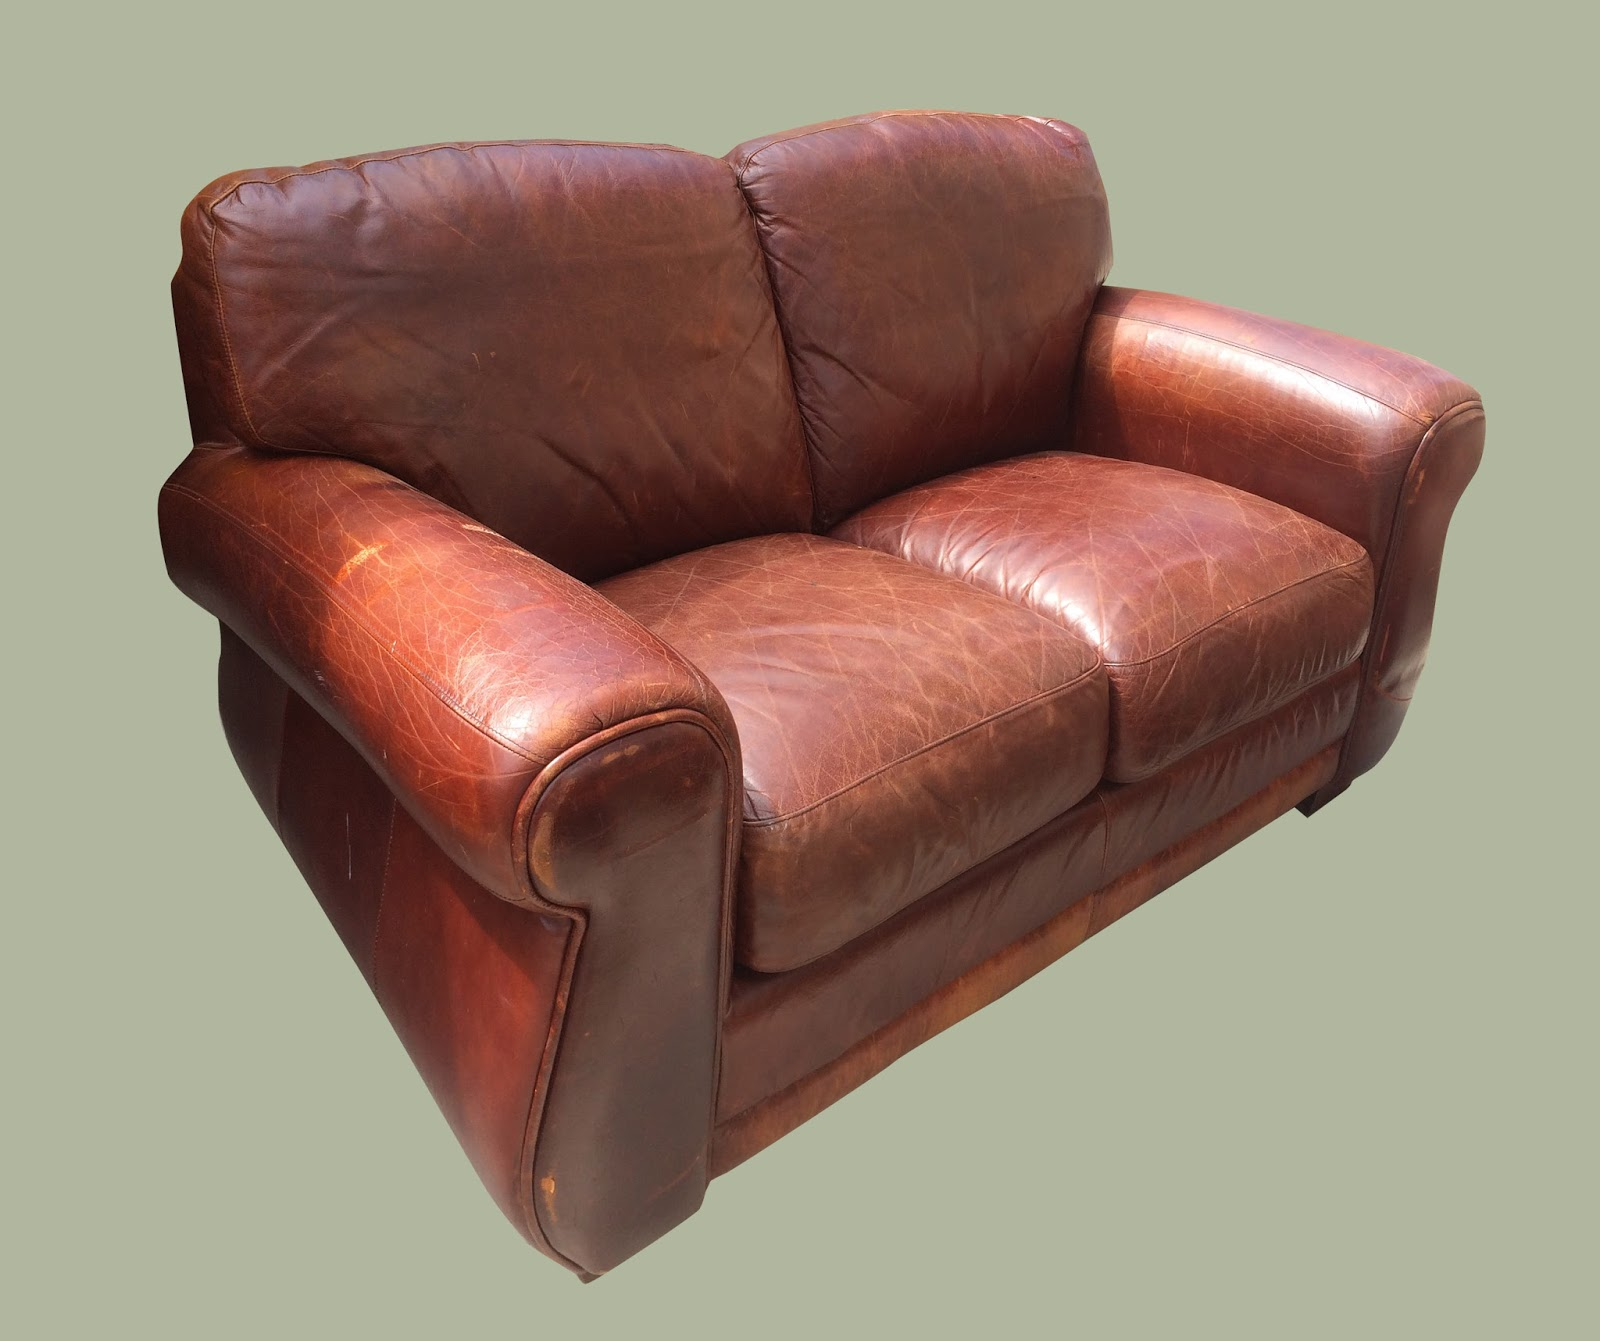 Uhuru Furniture Collectibles Distressed Leather Loveseat 225 Sold